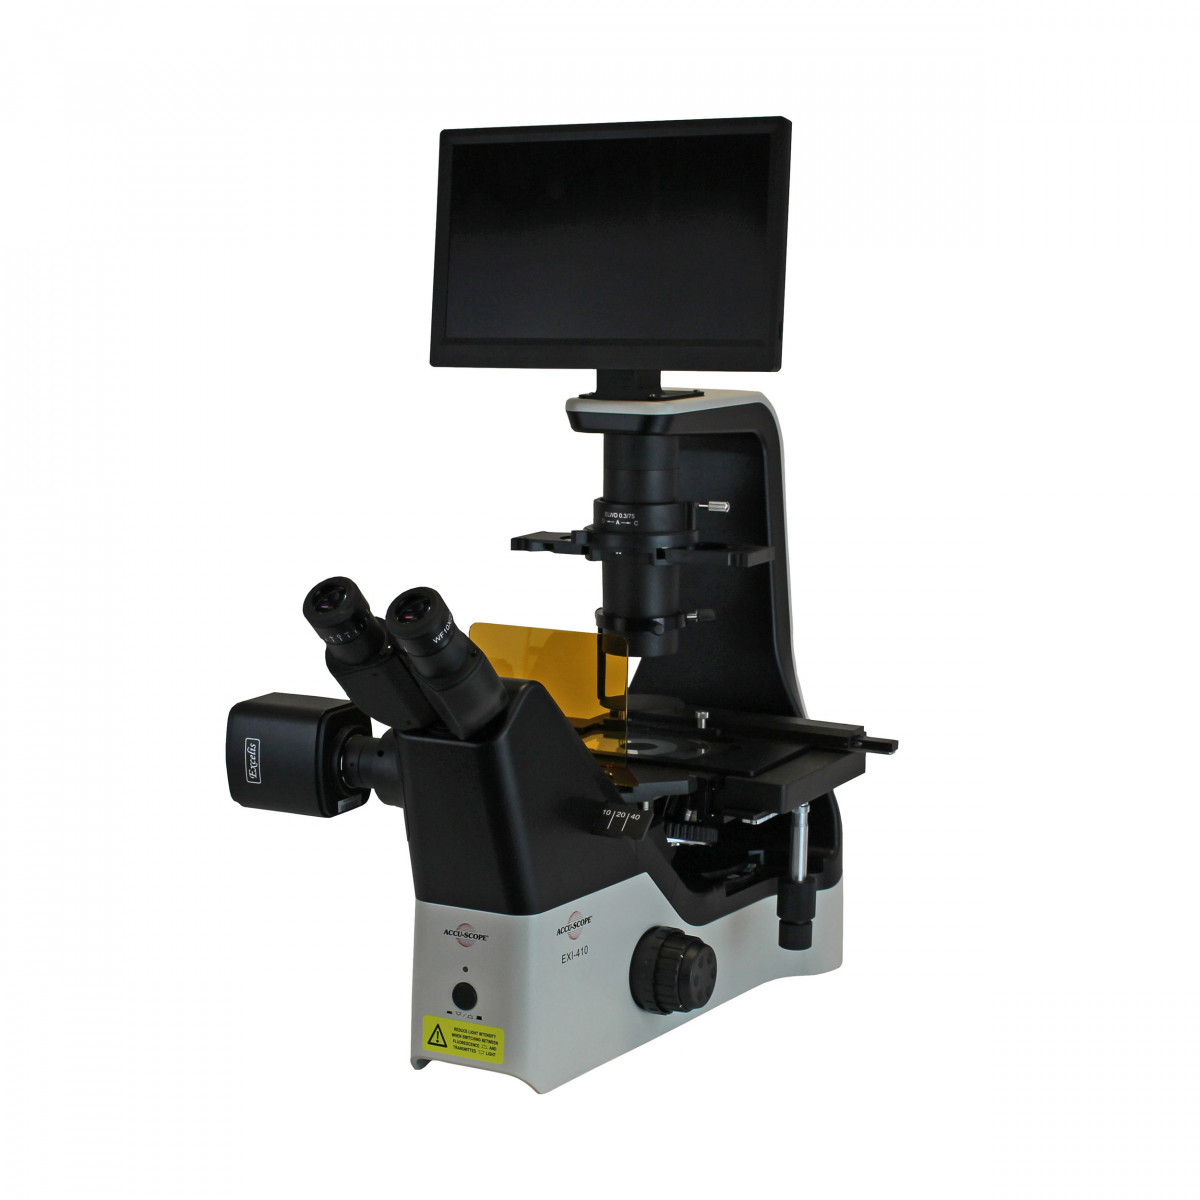 EXI-410-FL with optional objectives, phase contrast, emboss contrast, mechanical stage, Excelis HDS and monitor mount, camera adapter, and fluorescence light shield